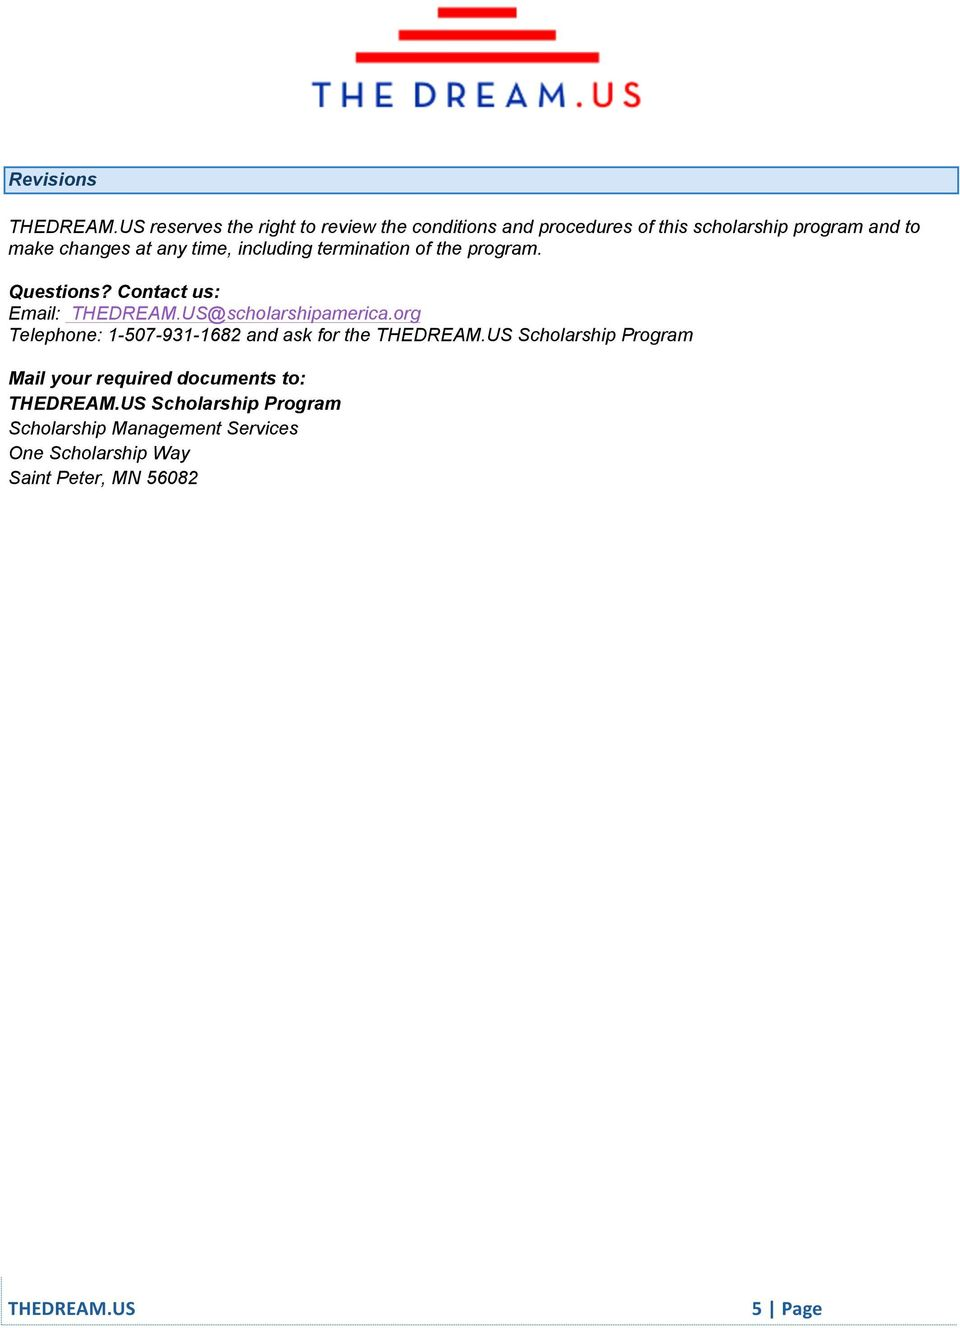 time, including termination of the program. Questions? Contact us: Email: THEDREAM.US@scholarshipamerica.